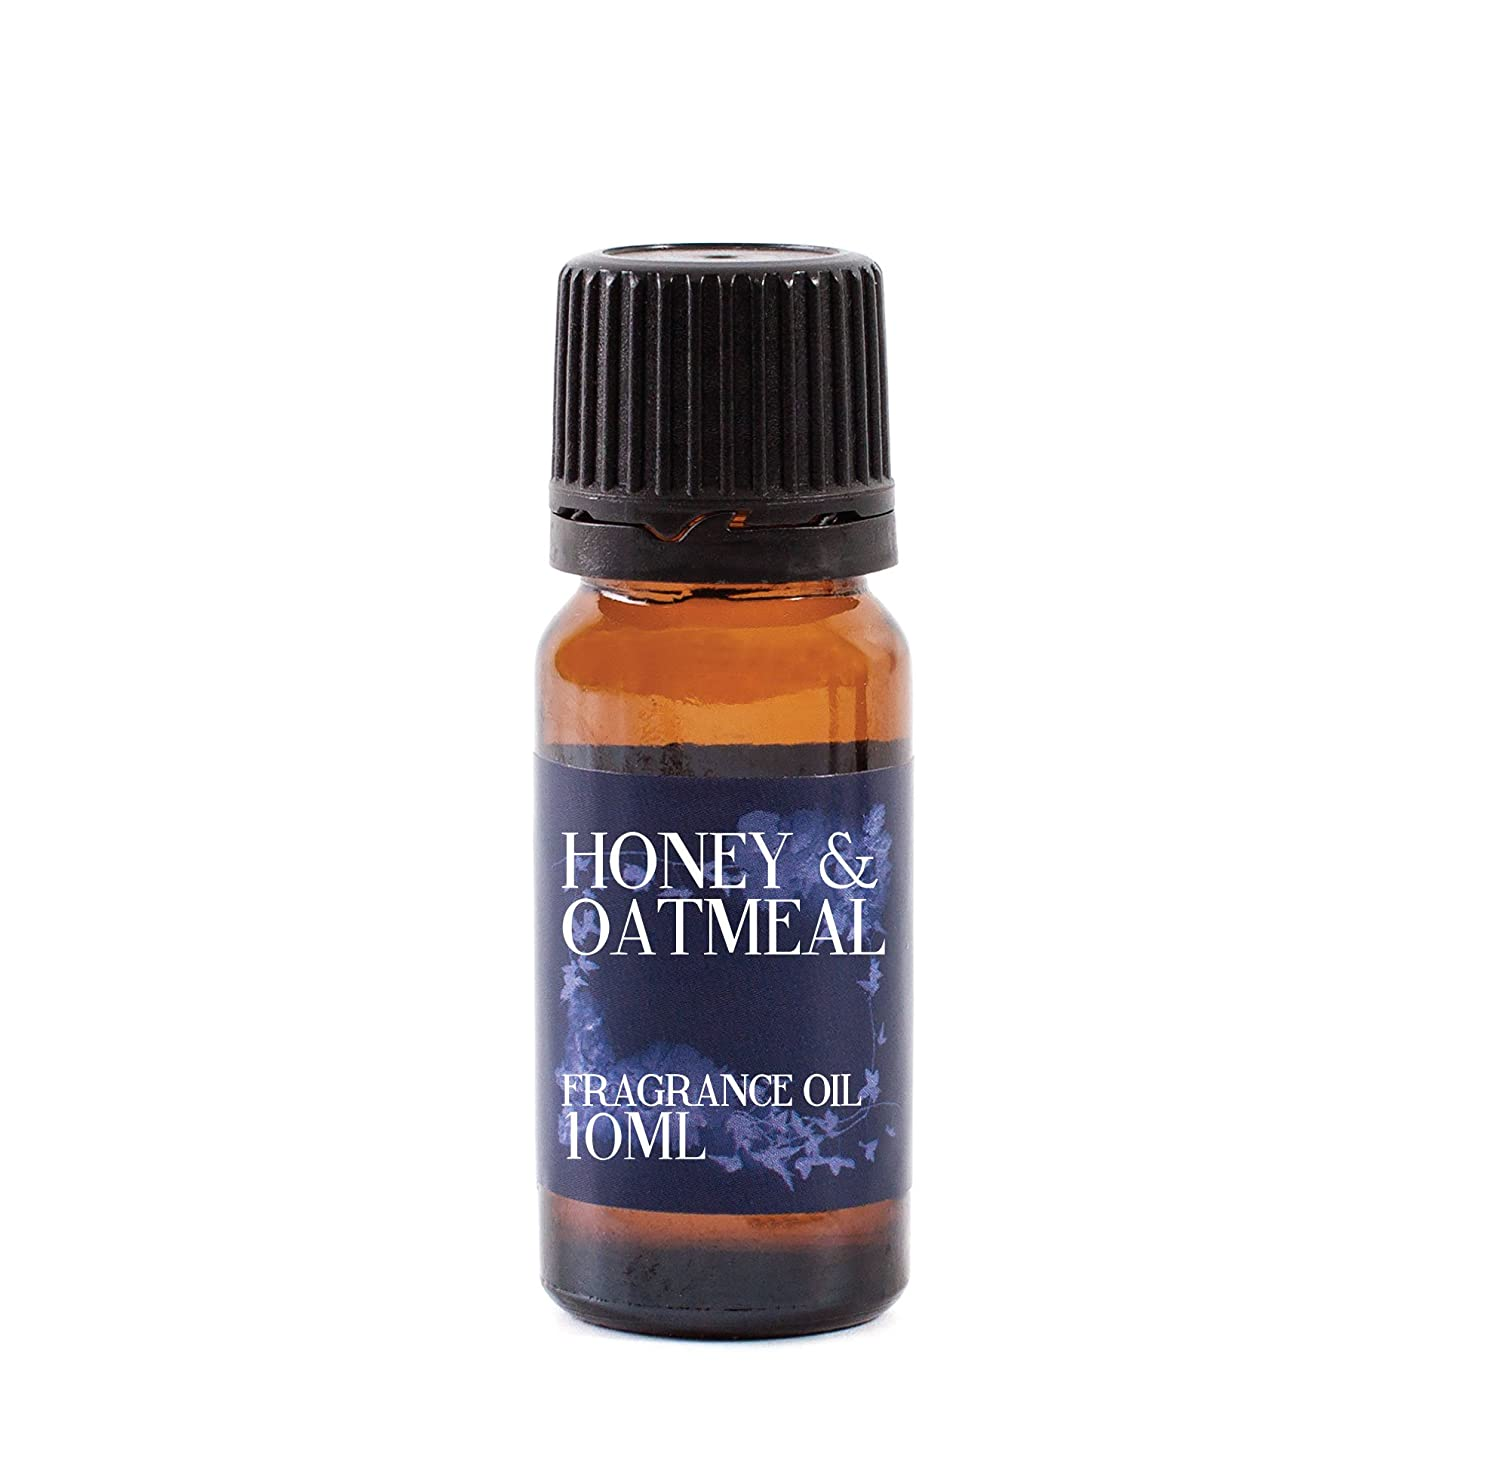 Mystic Moments | Honey & Oatmeal Fragrance Oil - 10ml FOHONEOAT10